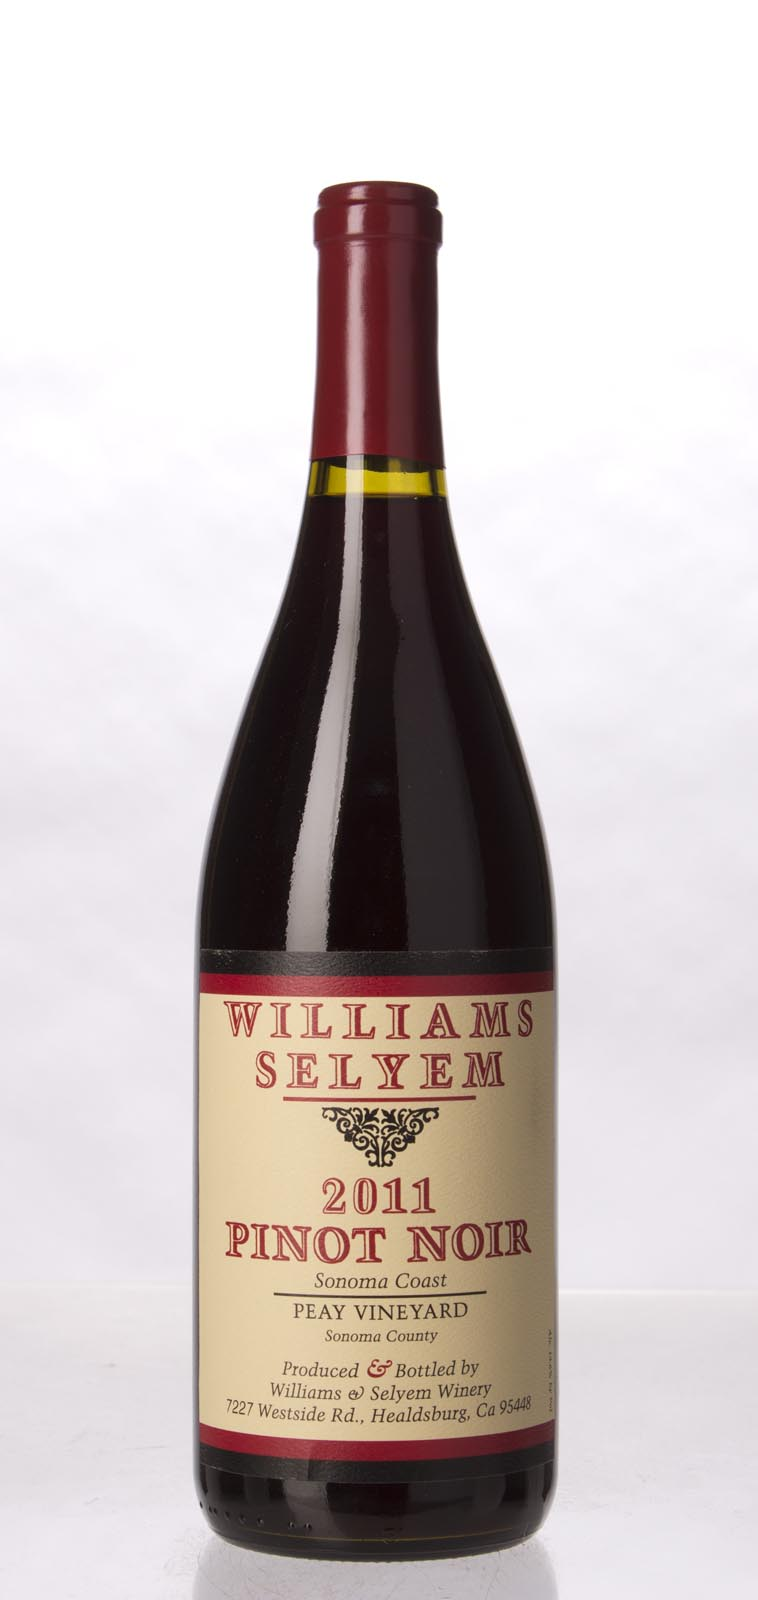 Williams Selyem Pinot Noir Peay Vineyard 2011, 750mL (ST93) from The BPW - Merchants of rare and fine wines.